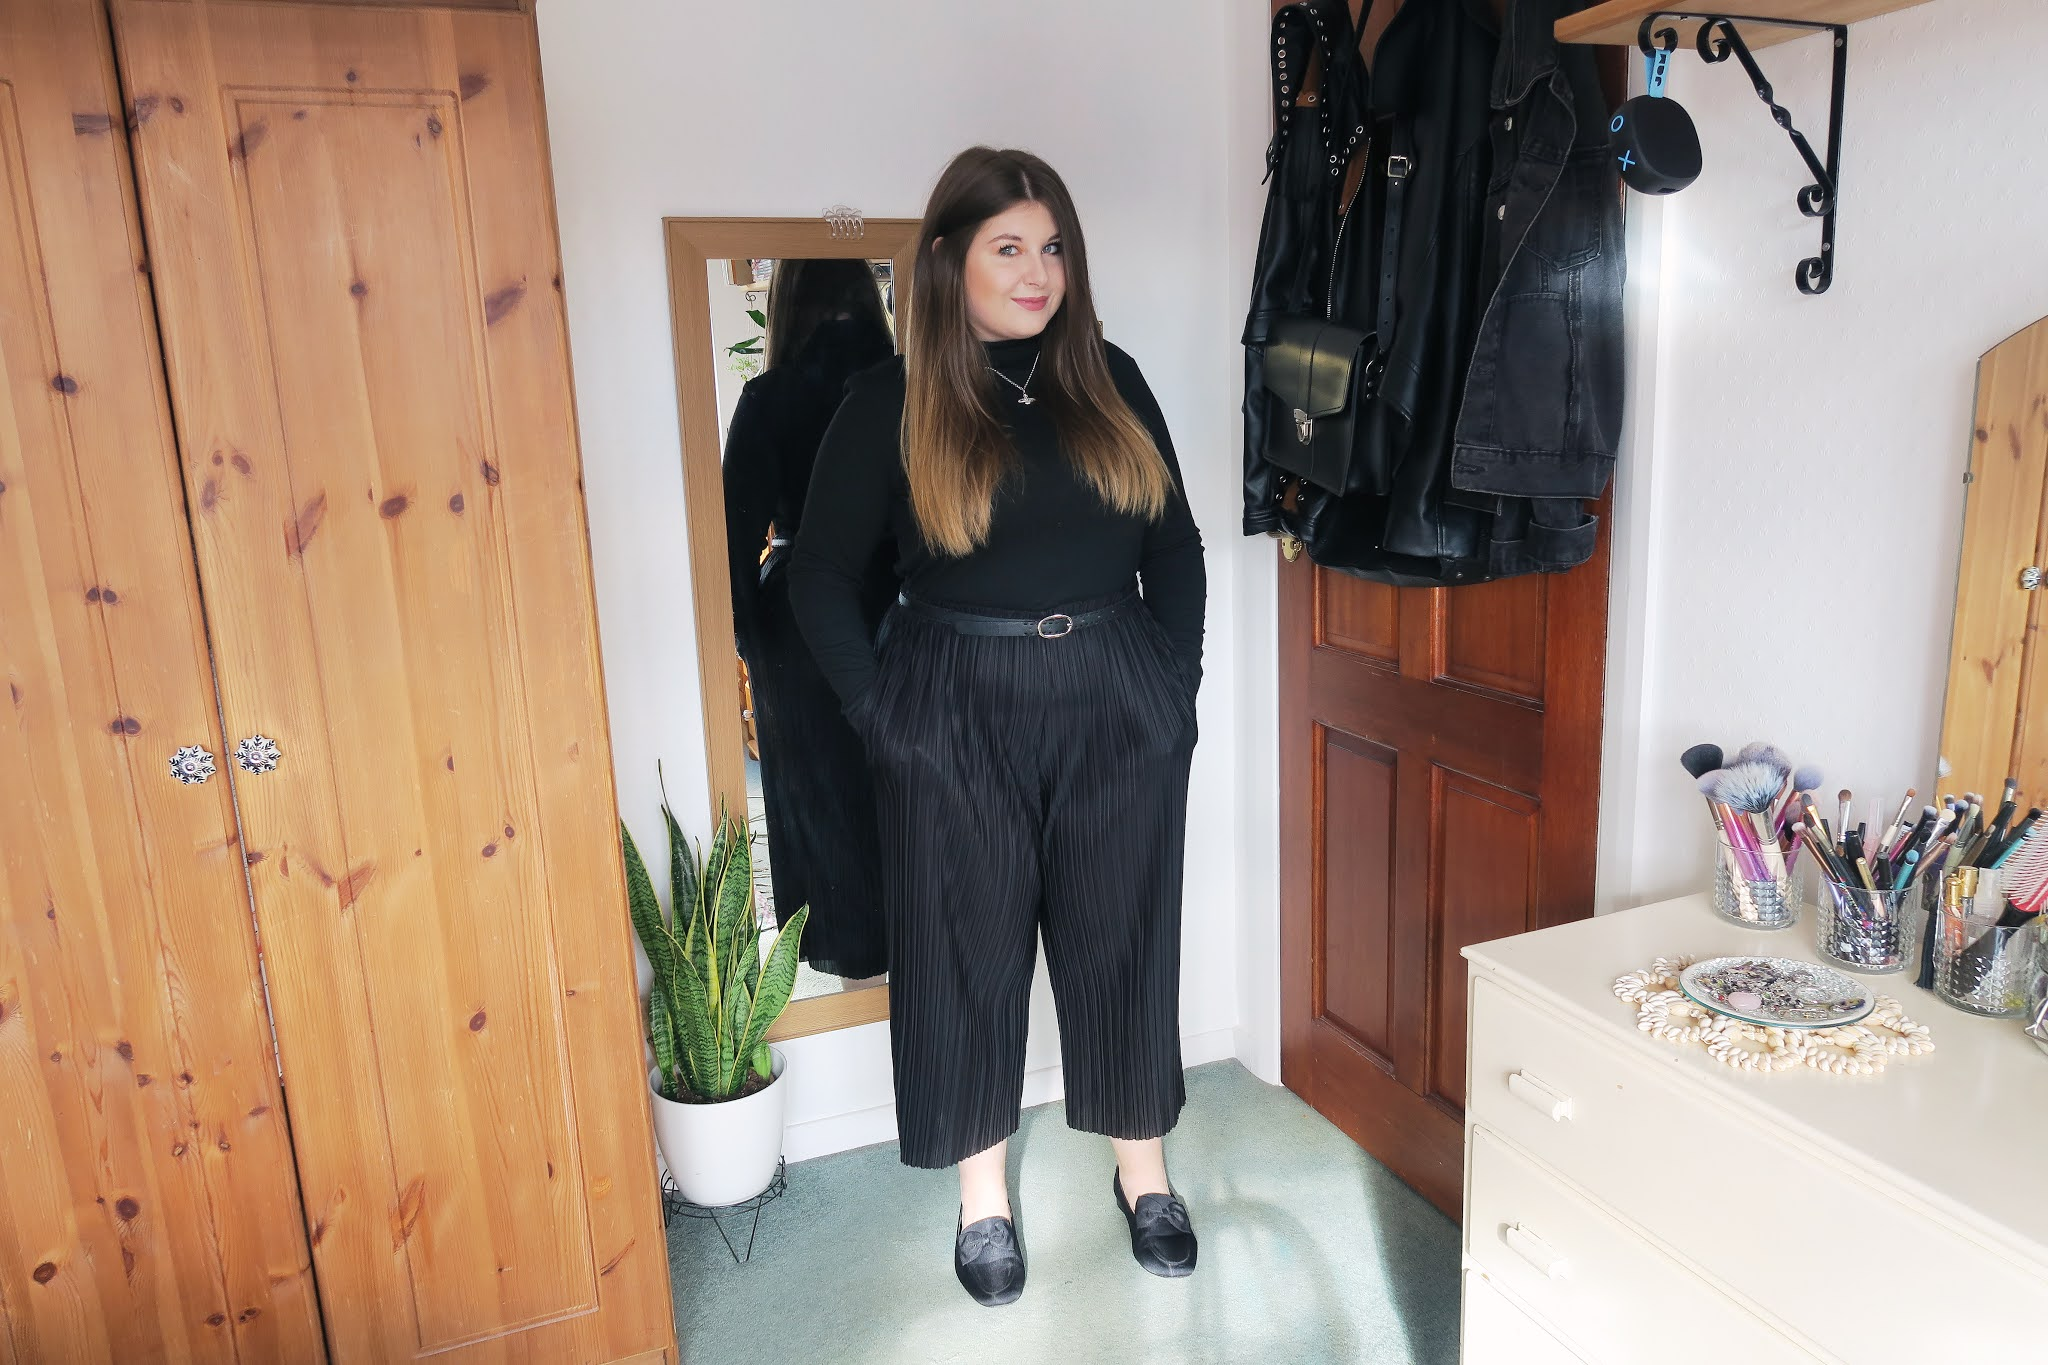 Grace is wearing a black roll neck top tucked into a pair of plain black culottes. On her feet she is wearing a pair of plain black loafers